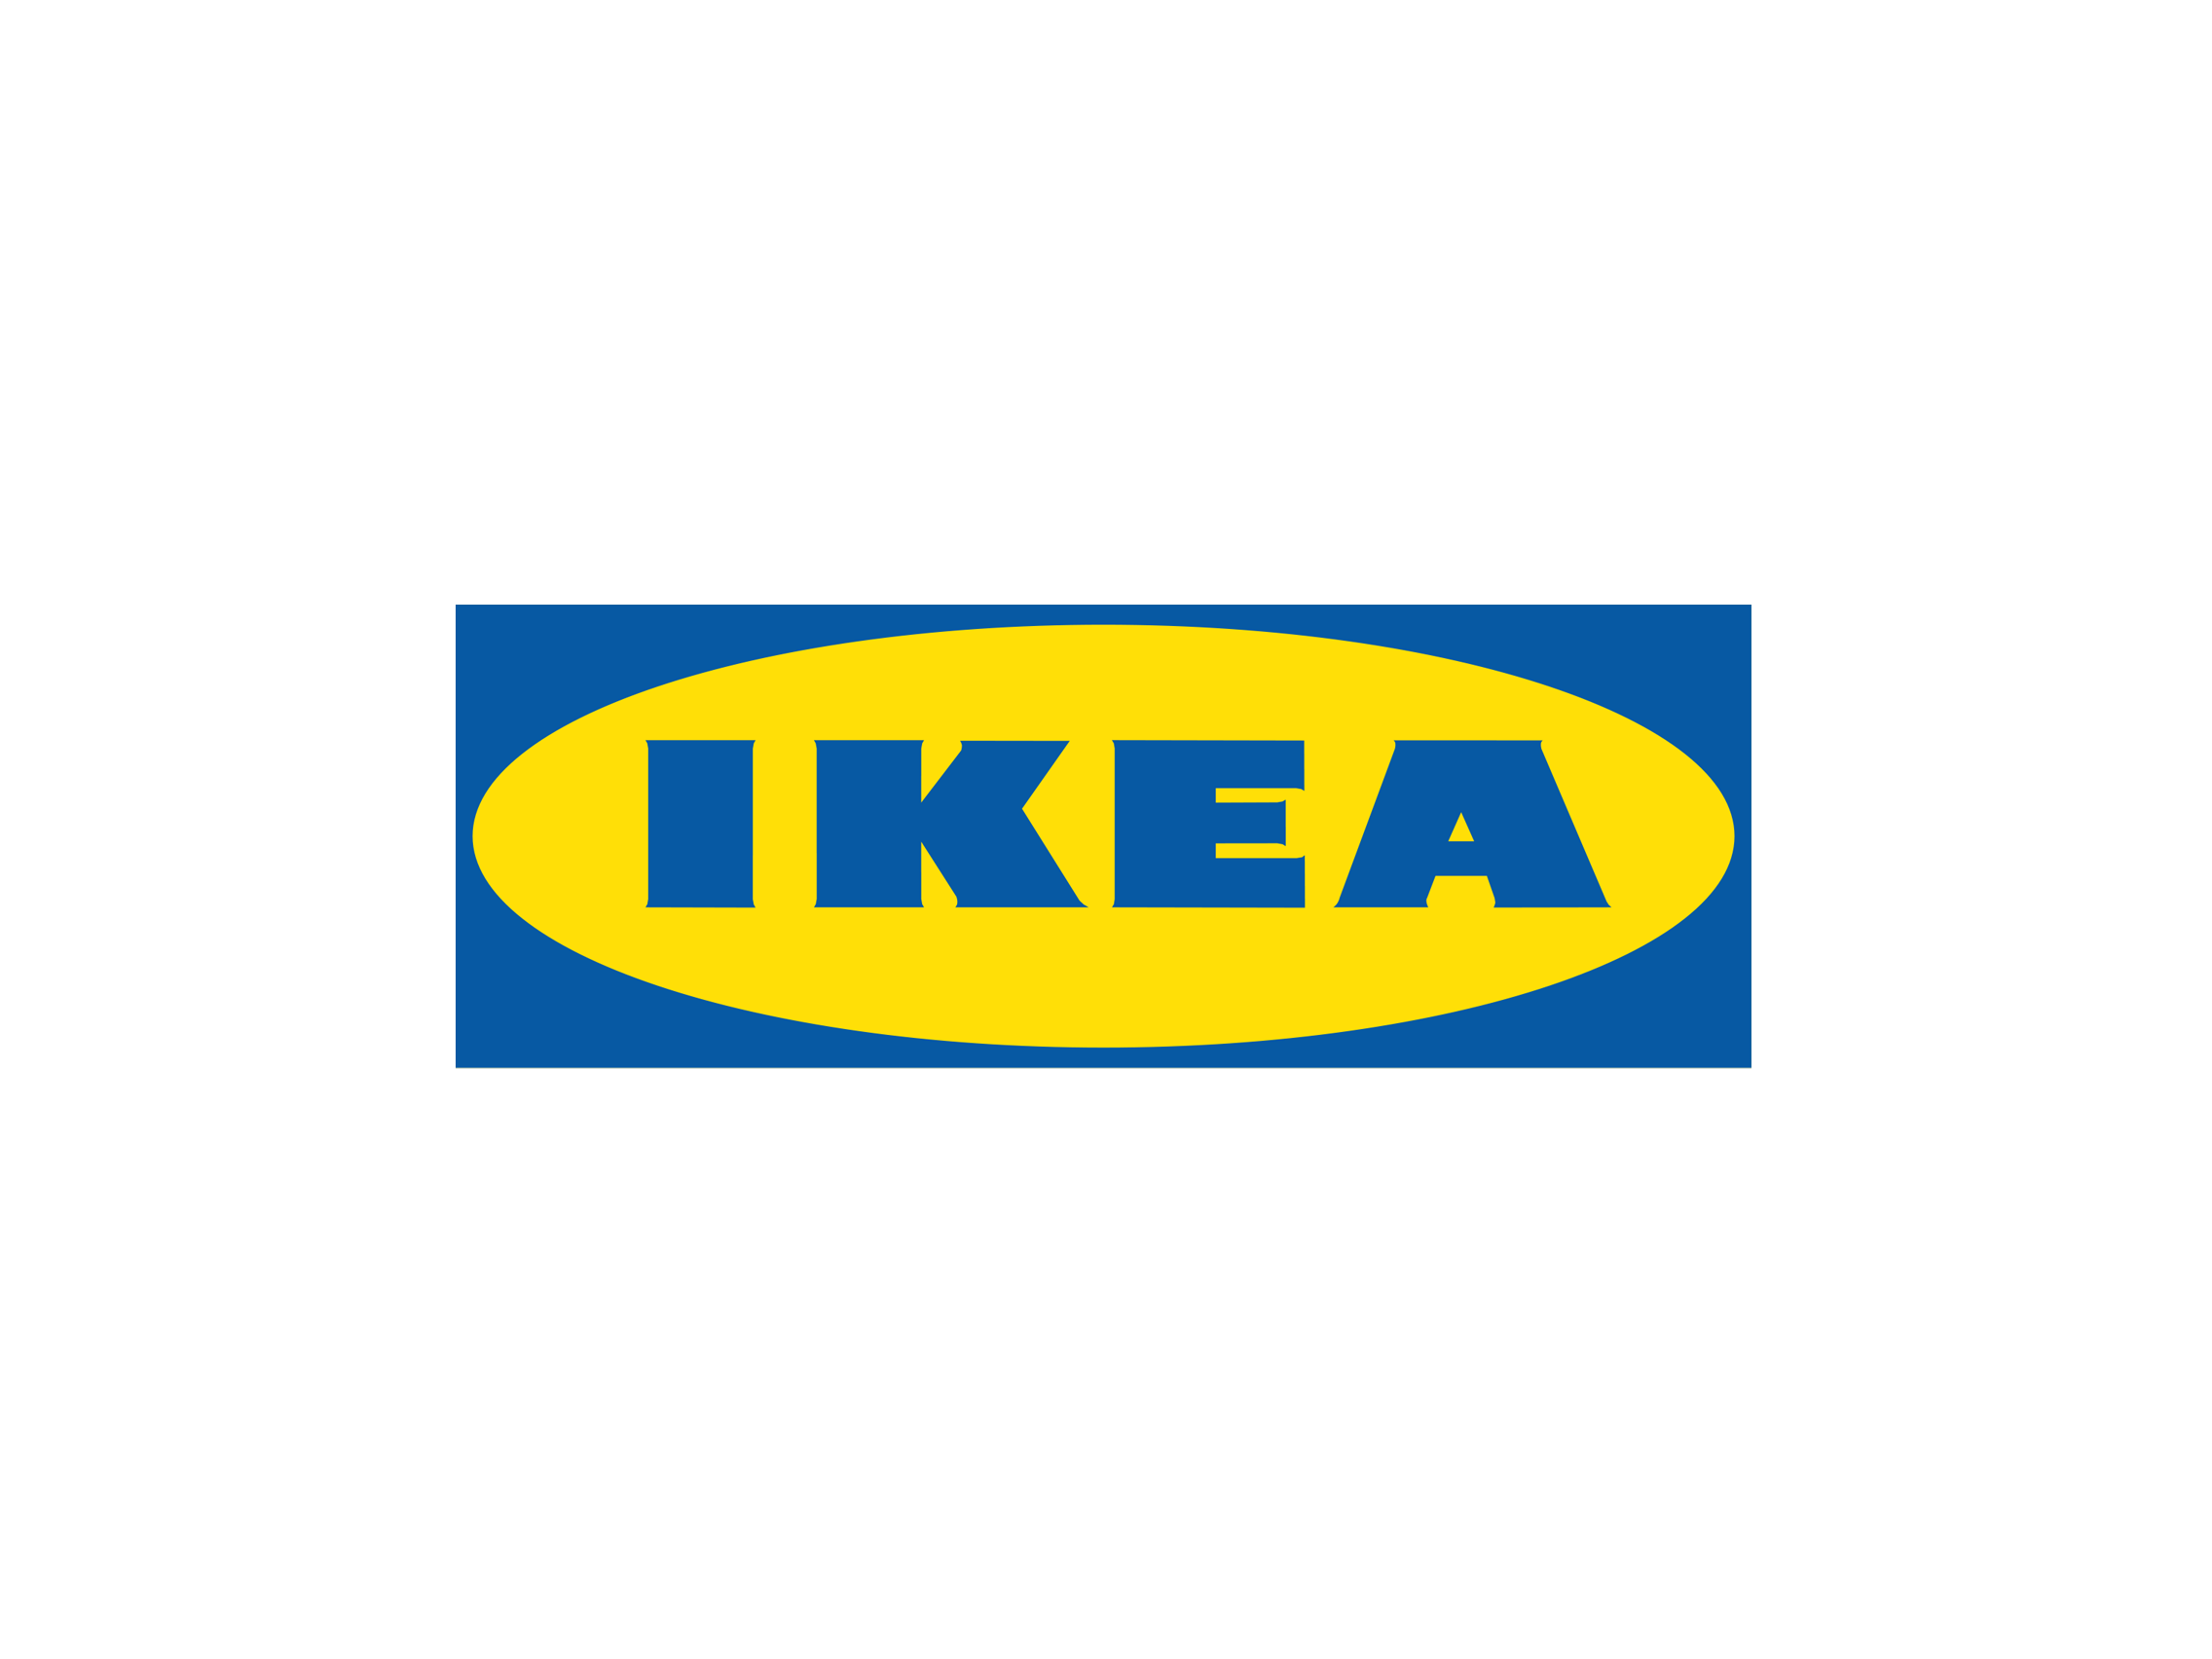 logo ikea. Black Bedroom Furniture Sets. Home Design Ideas